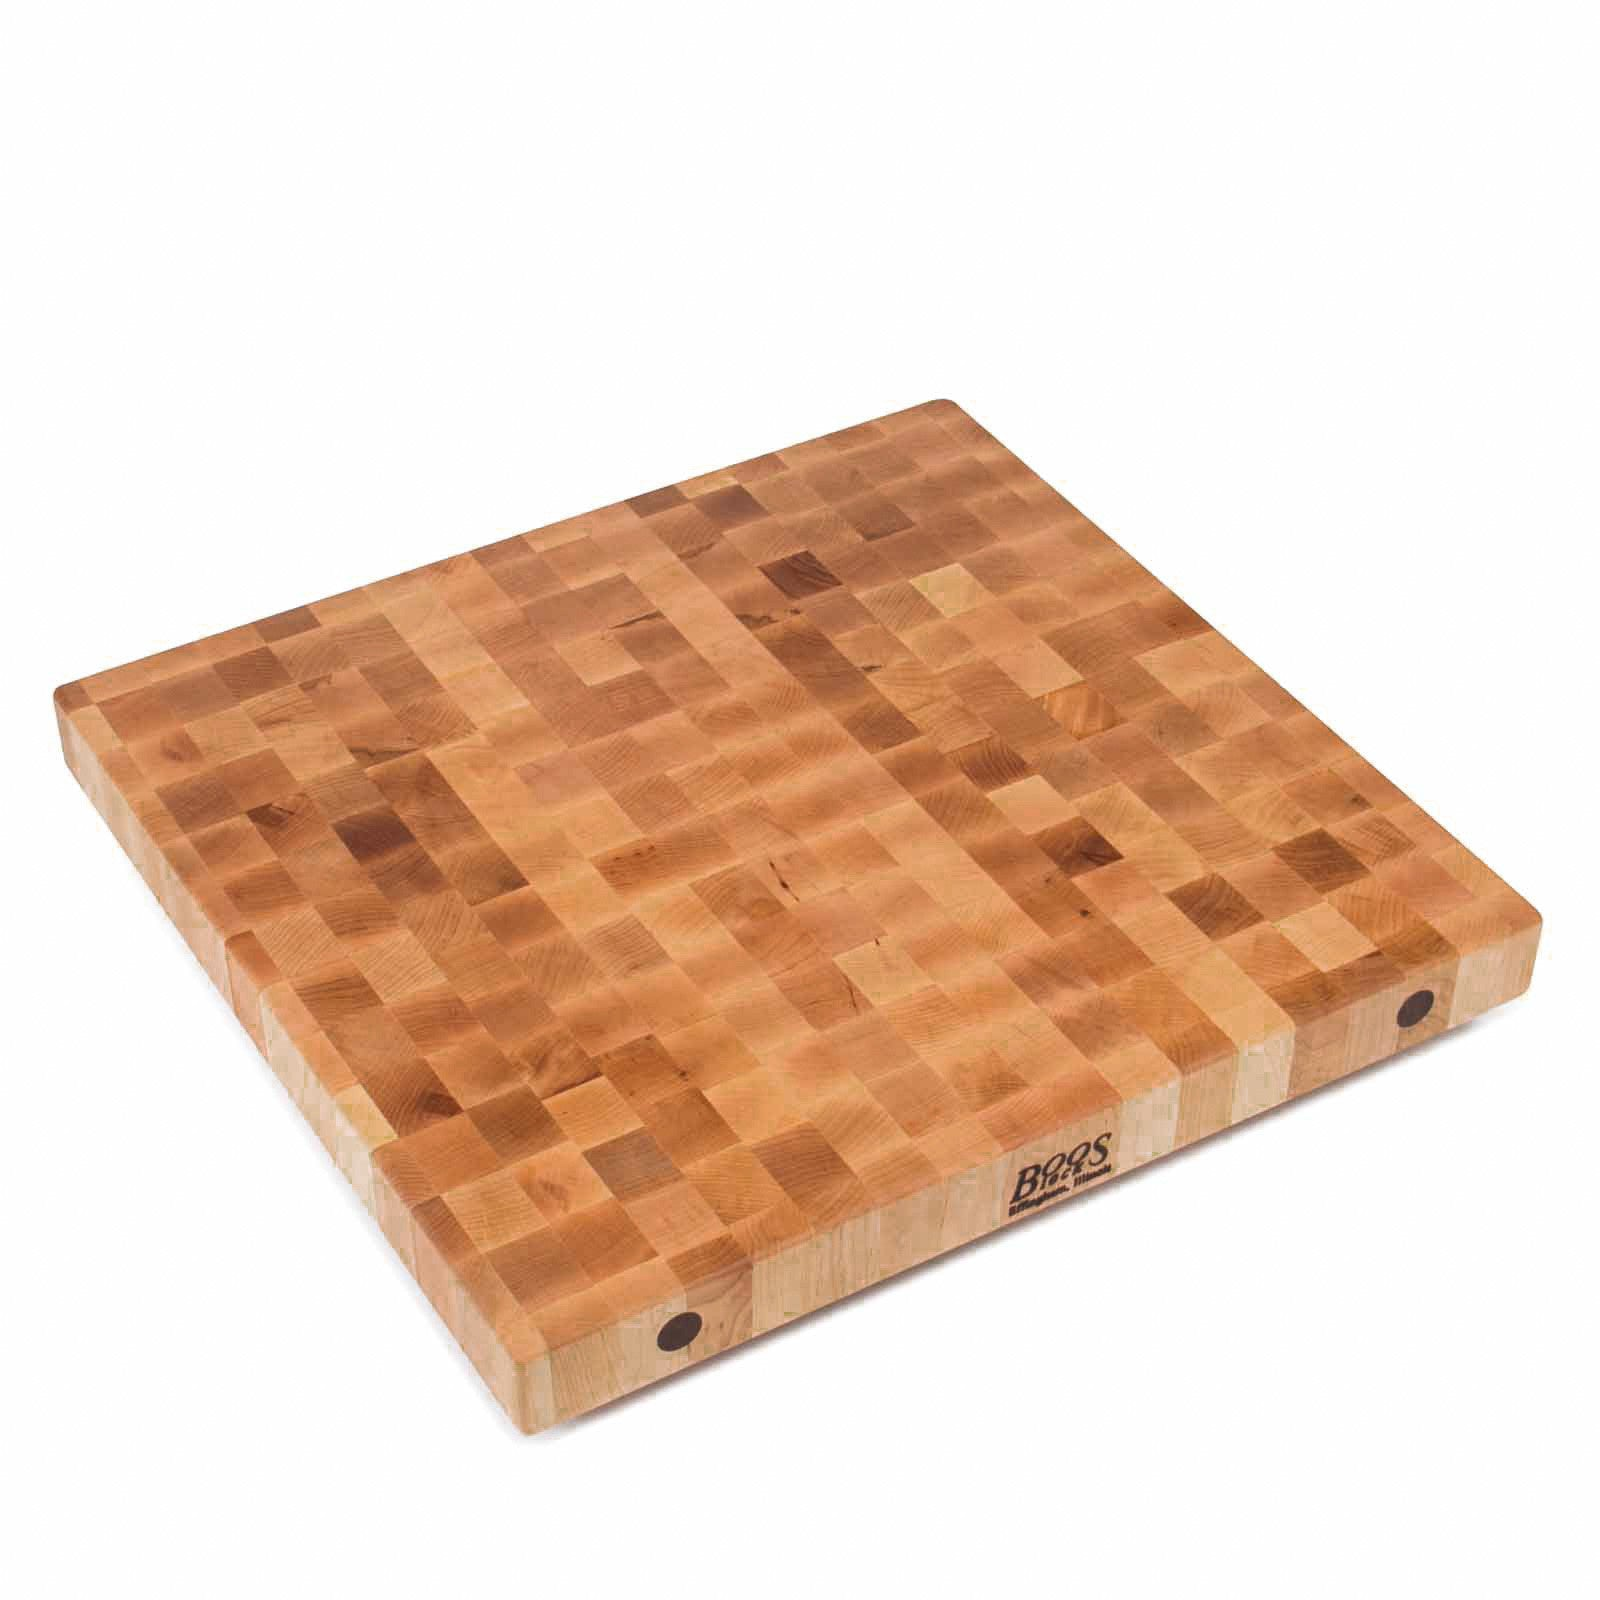 "John Boos 2 1/4"" Thick End Grain Maple Butcher Block Island Top - 25"" Wide"